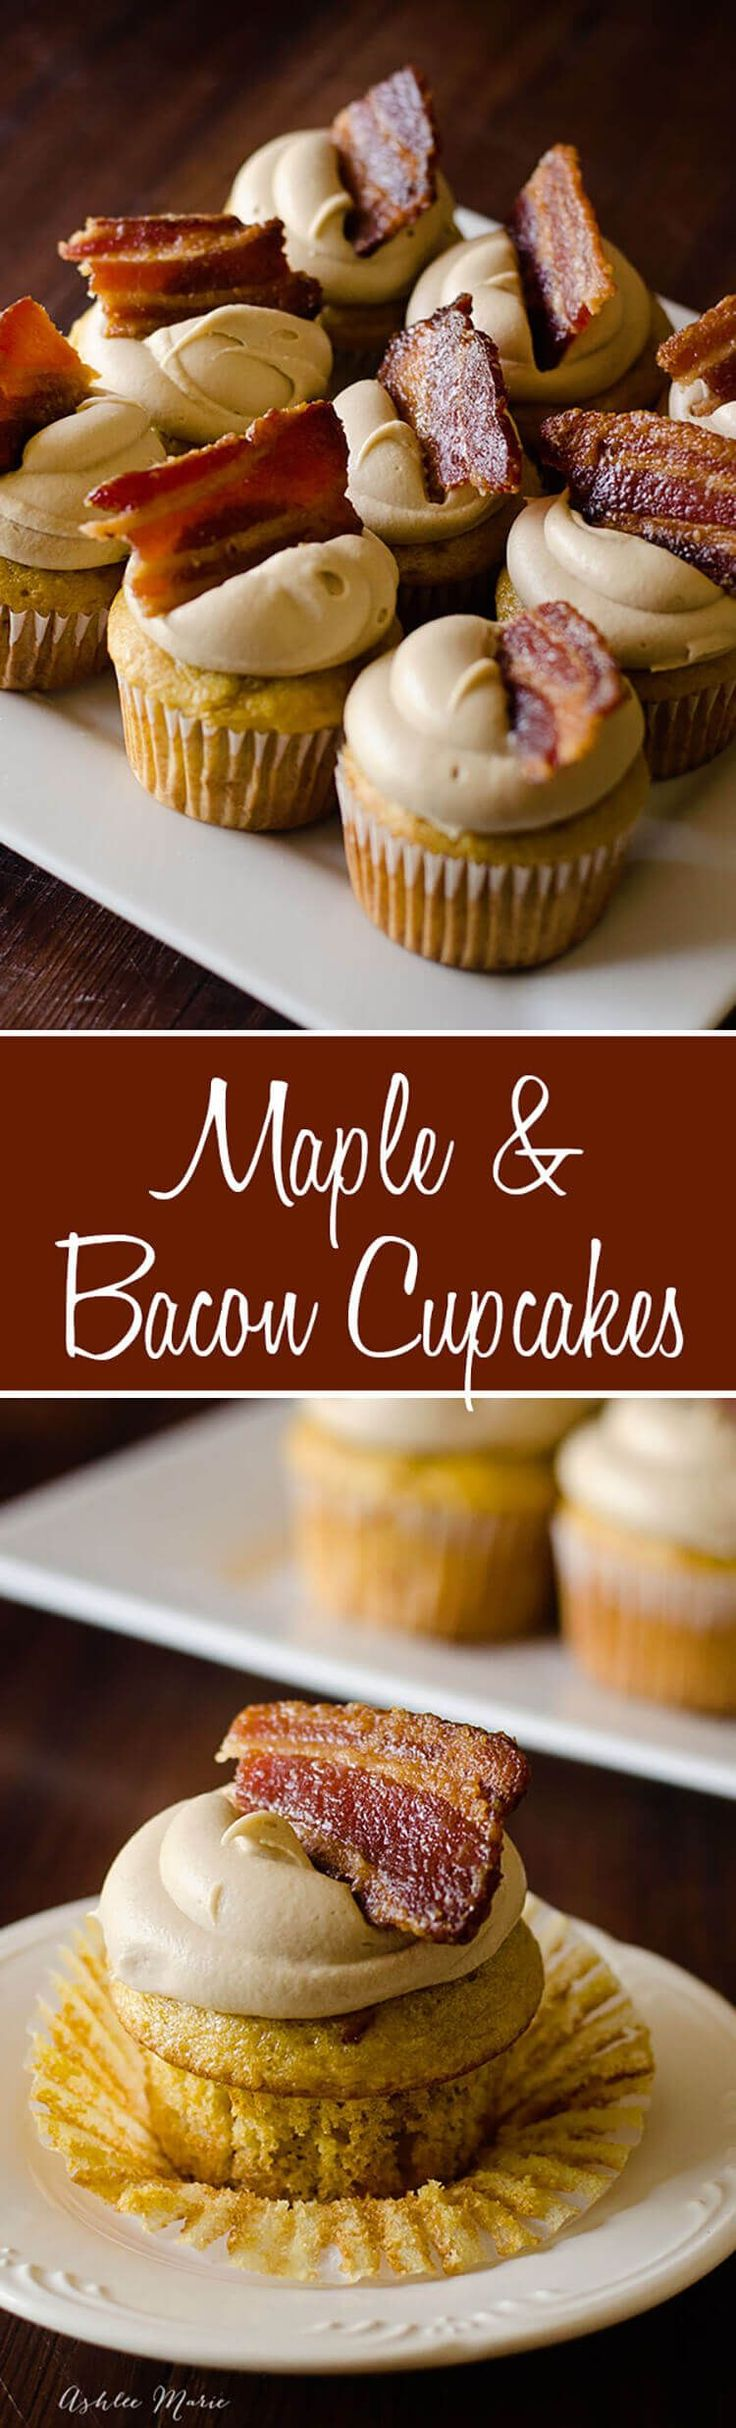 It doesn't get much better than candied bacon and maple! These cupcakes are easy to make and a huge hit. Copycat recipe from Epcot Disneyland. | Fall | Winter | Cupcakes | Cake | Holiday | Frosting | #maplebaconrecipes #cupcakes #homemadefrosting #holidaydesserts